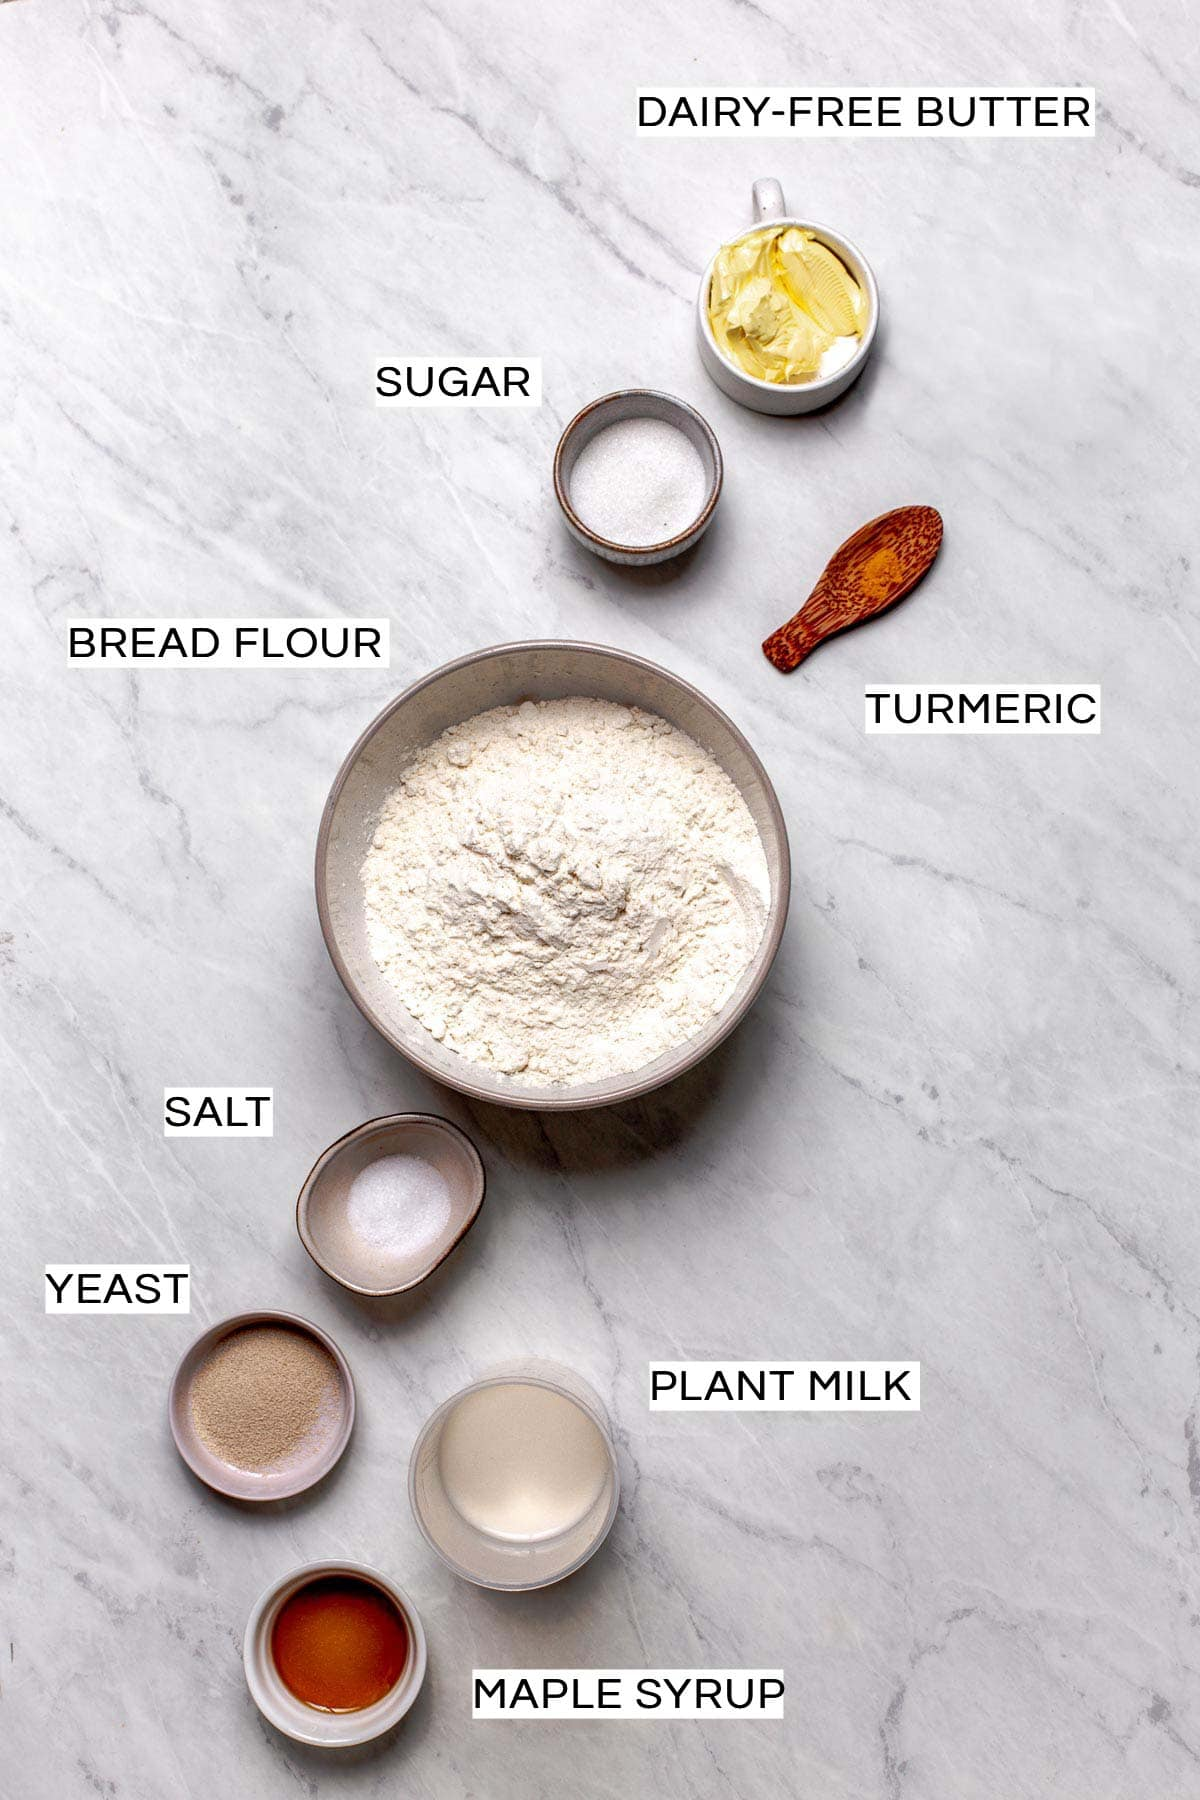 All ingredients needed to bake vegan hot dog buns laid out on a marble surface.